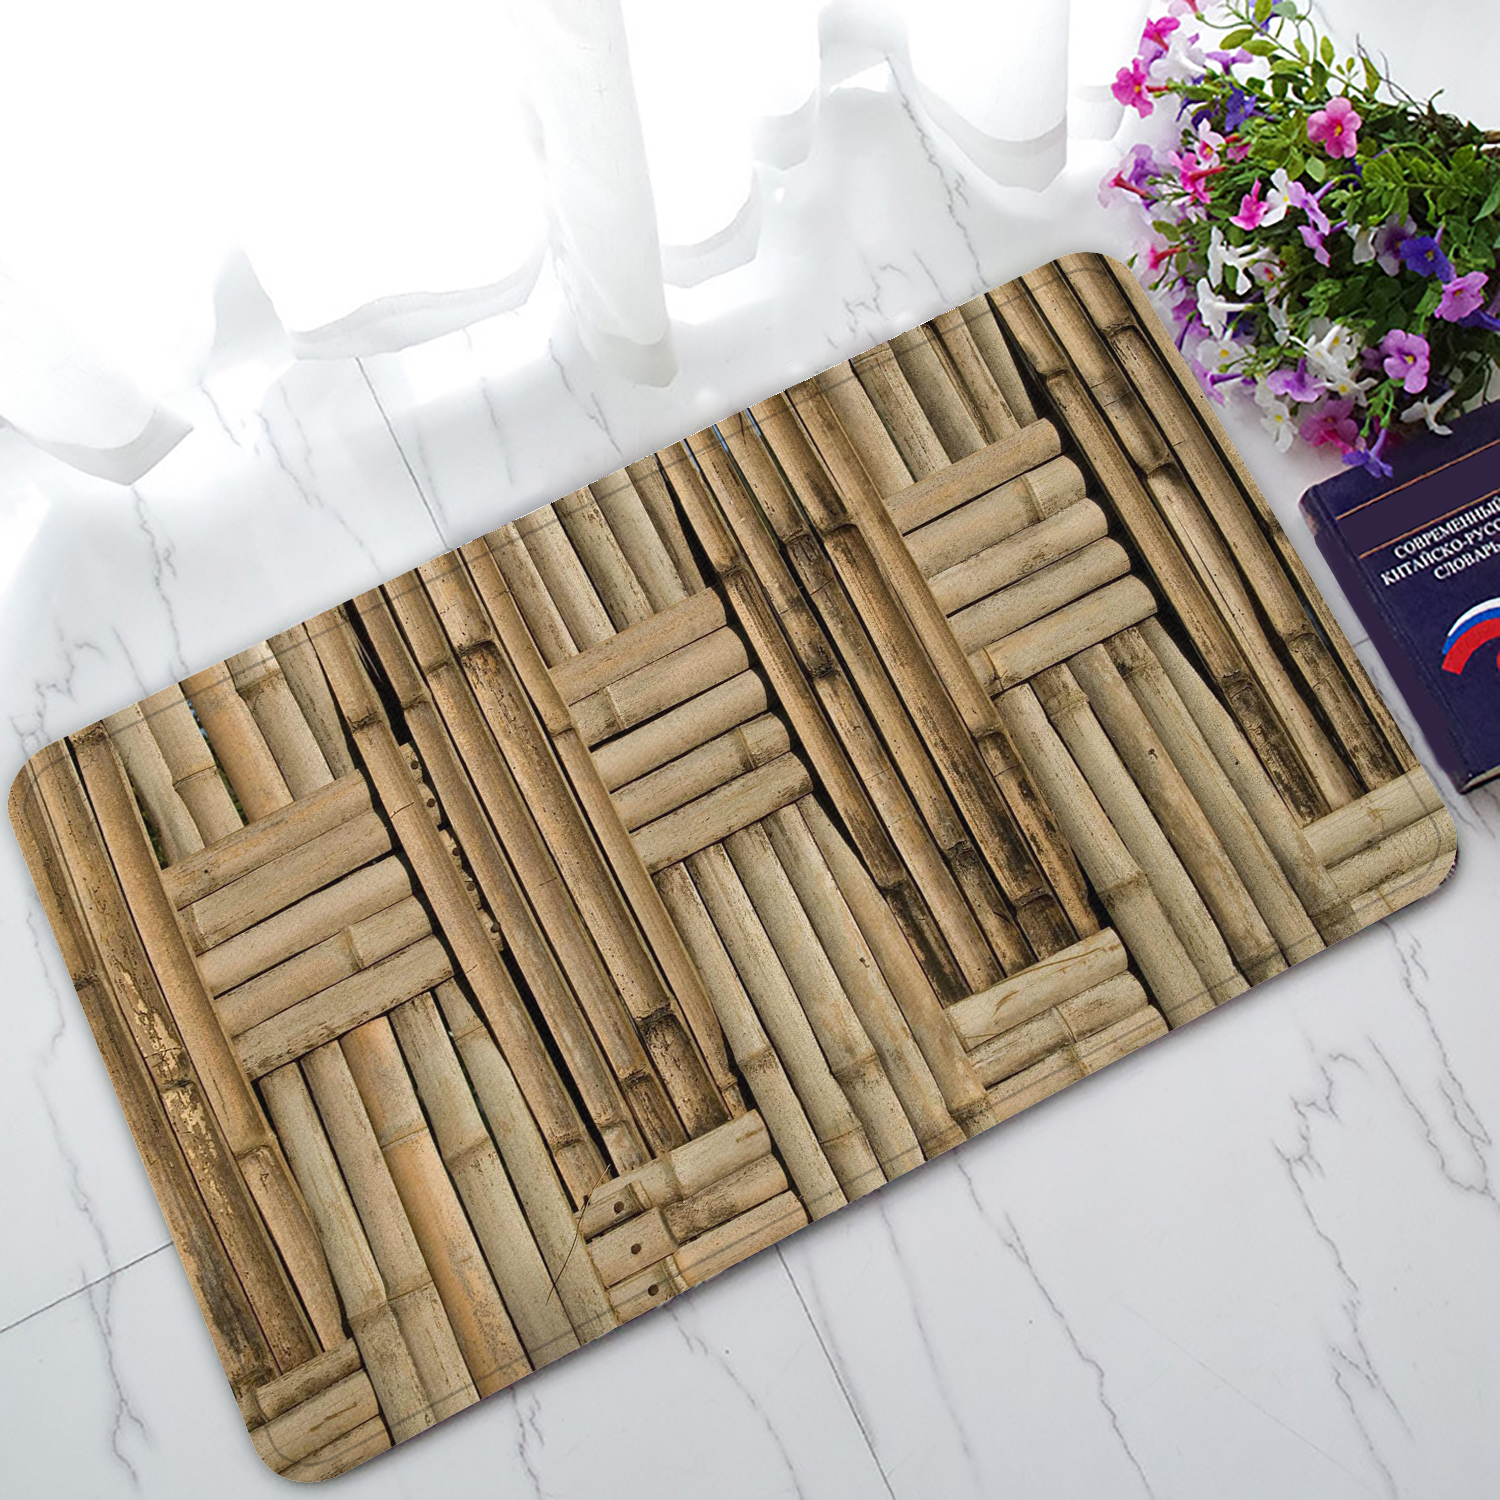 ZKGK Nature Bamboo Wall Non-Slip Doormat Indoor/Outdoor/Bathroom Doormat 30 x 18 Inches